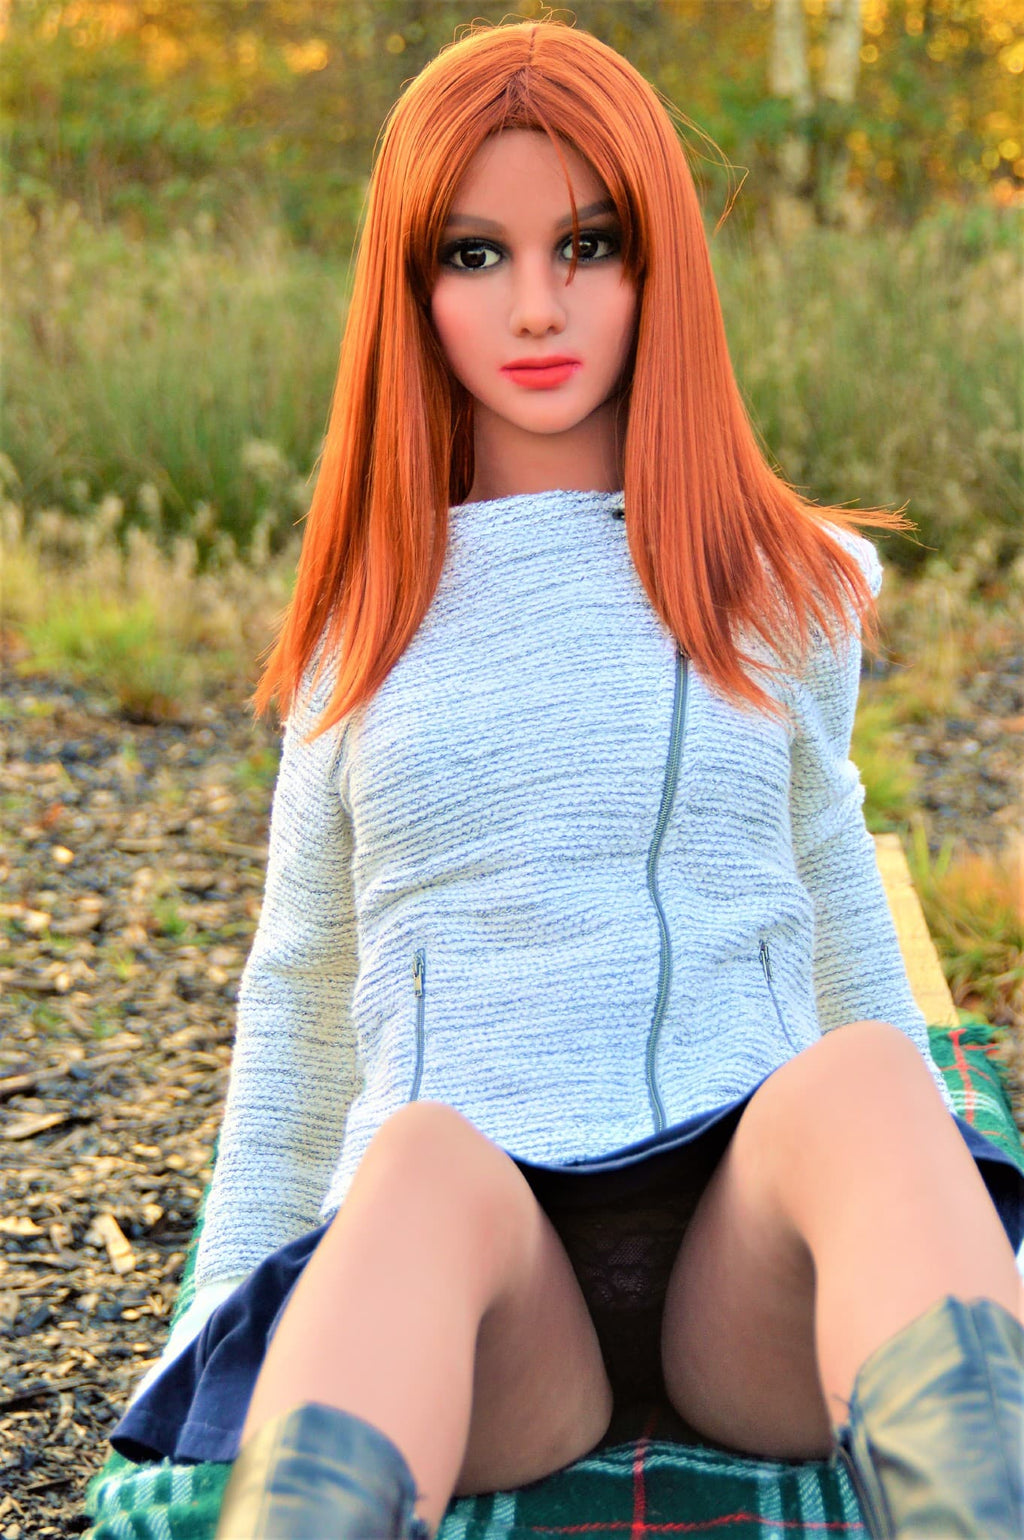 cristina 155cm skinny red hair flat chested tpe teen sex doll